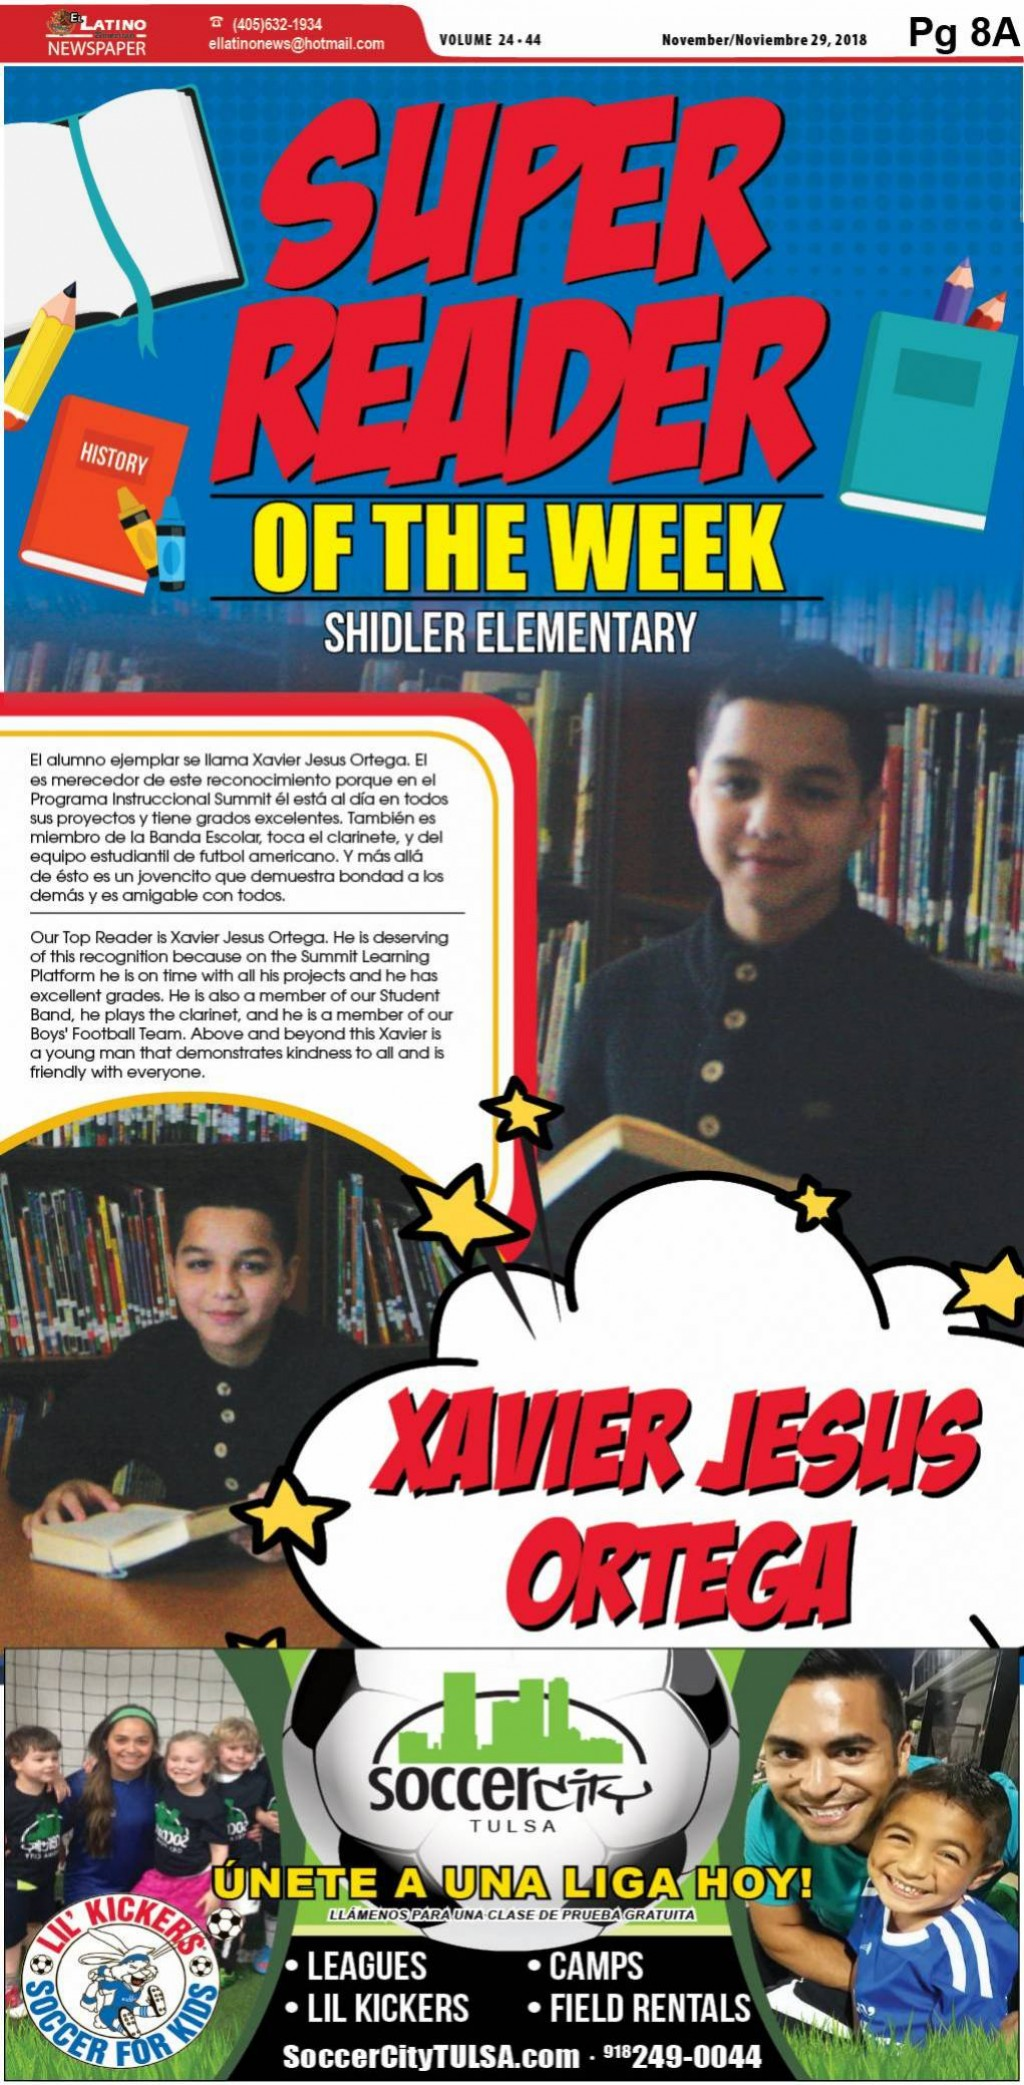 Super Reader of the Week: Xavier Jesus Ortega